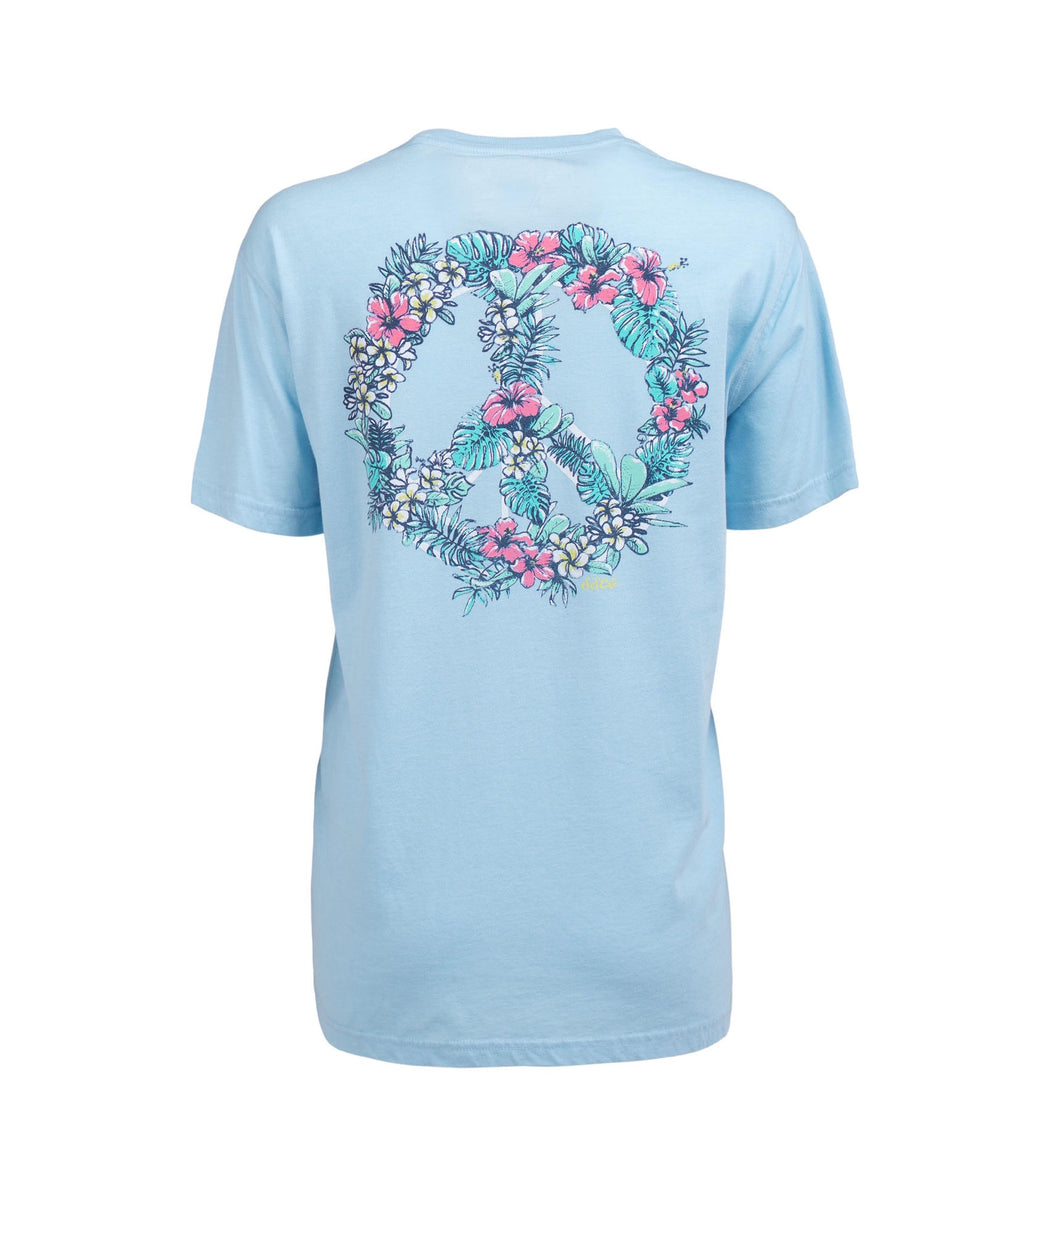 Flower Child SS Tee